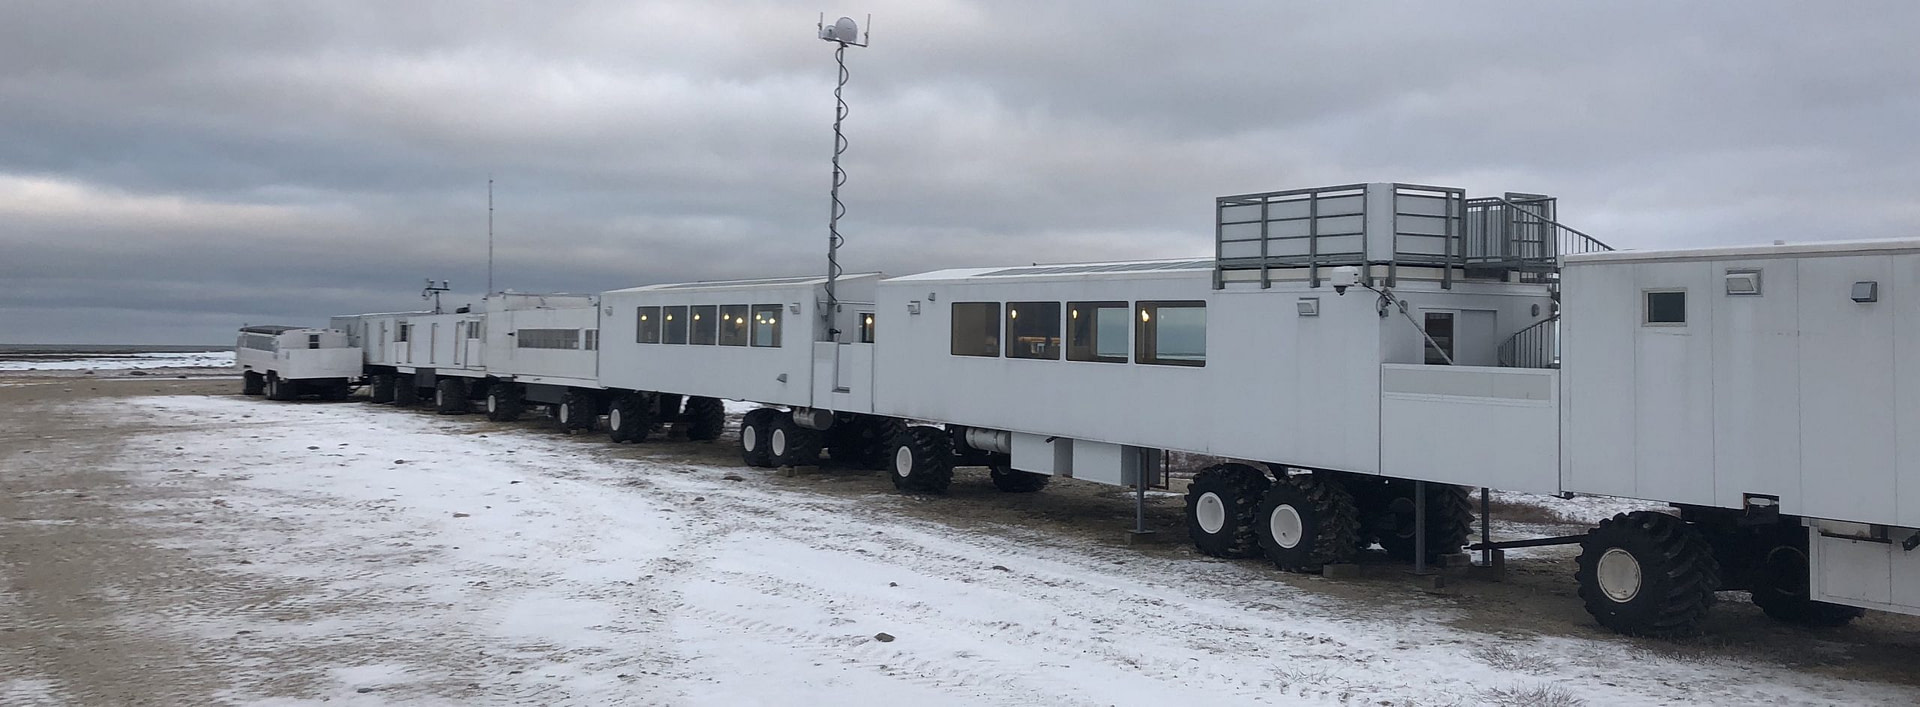 XRain Self Wiping Camera Housing System Installed On The Tundra Buggy Lodge Overlooking Polar Bears In Wapusk National Park In Churchill Manitoba Canada